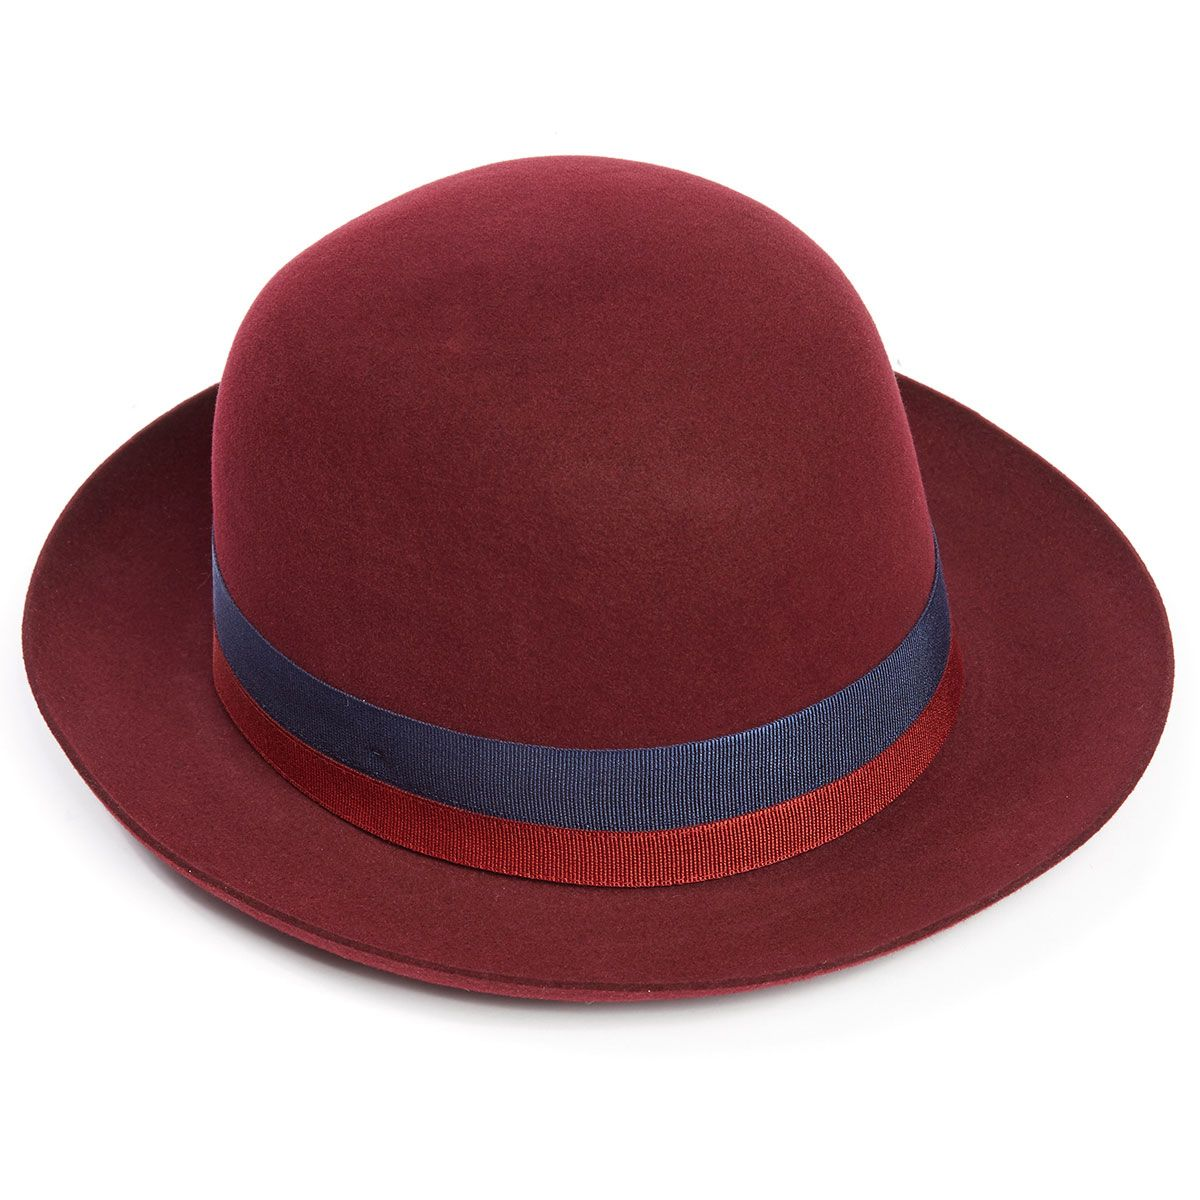 Seasonal Foldaway Fur Felt Trilby Hat in Red Wine - Red Wine in Size 60cm